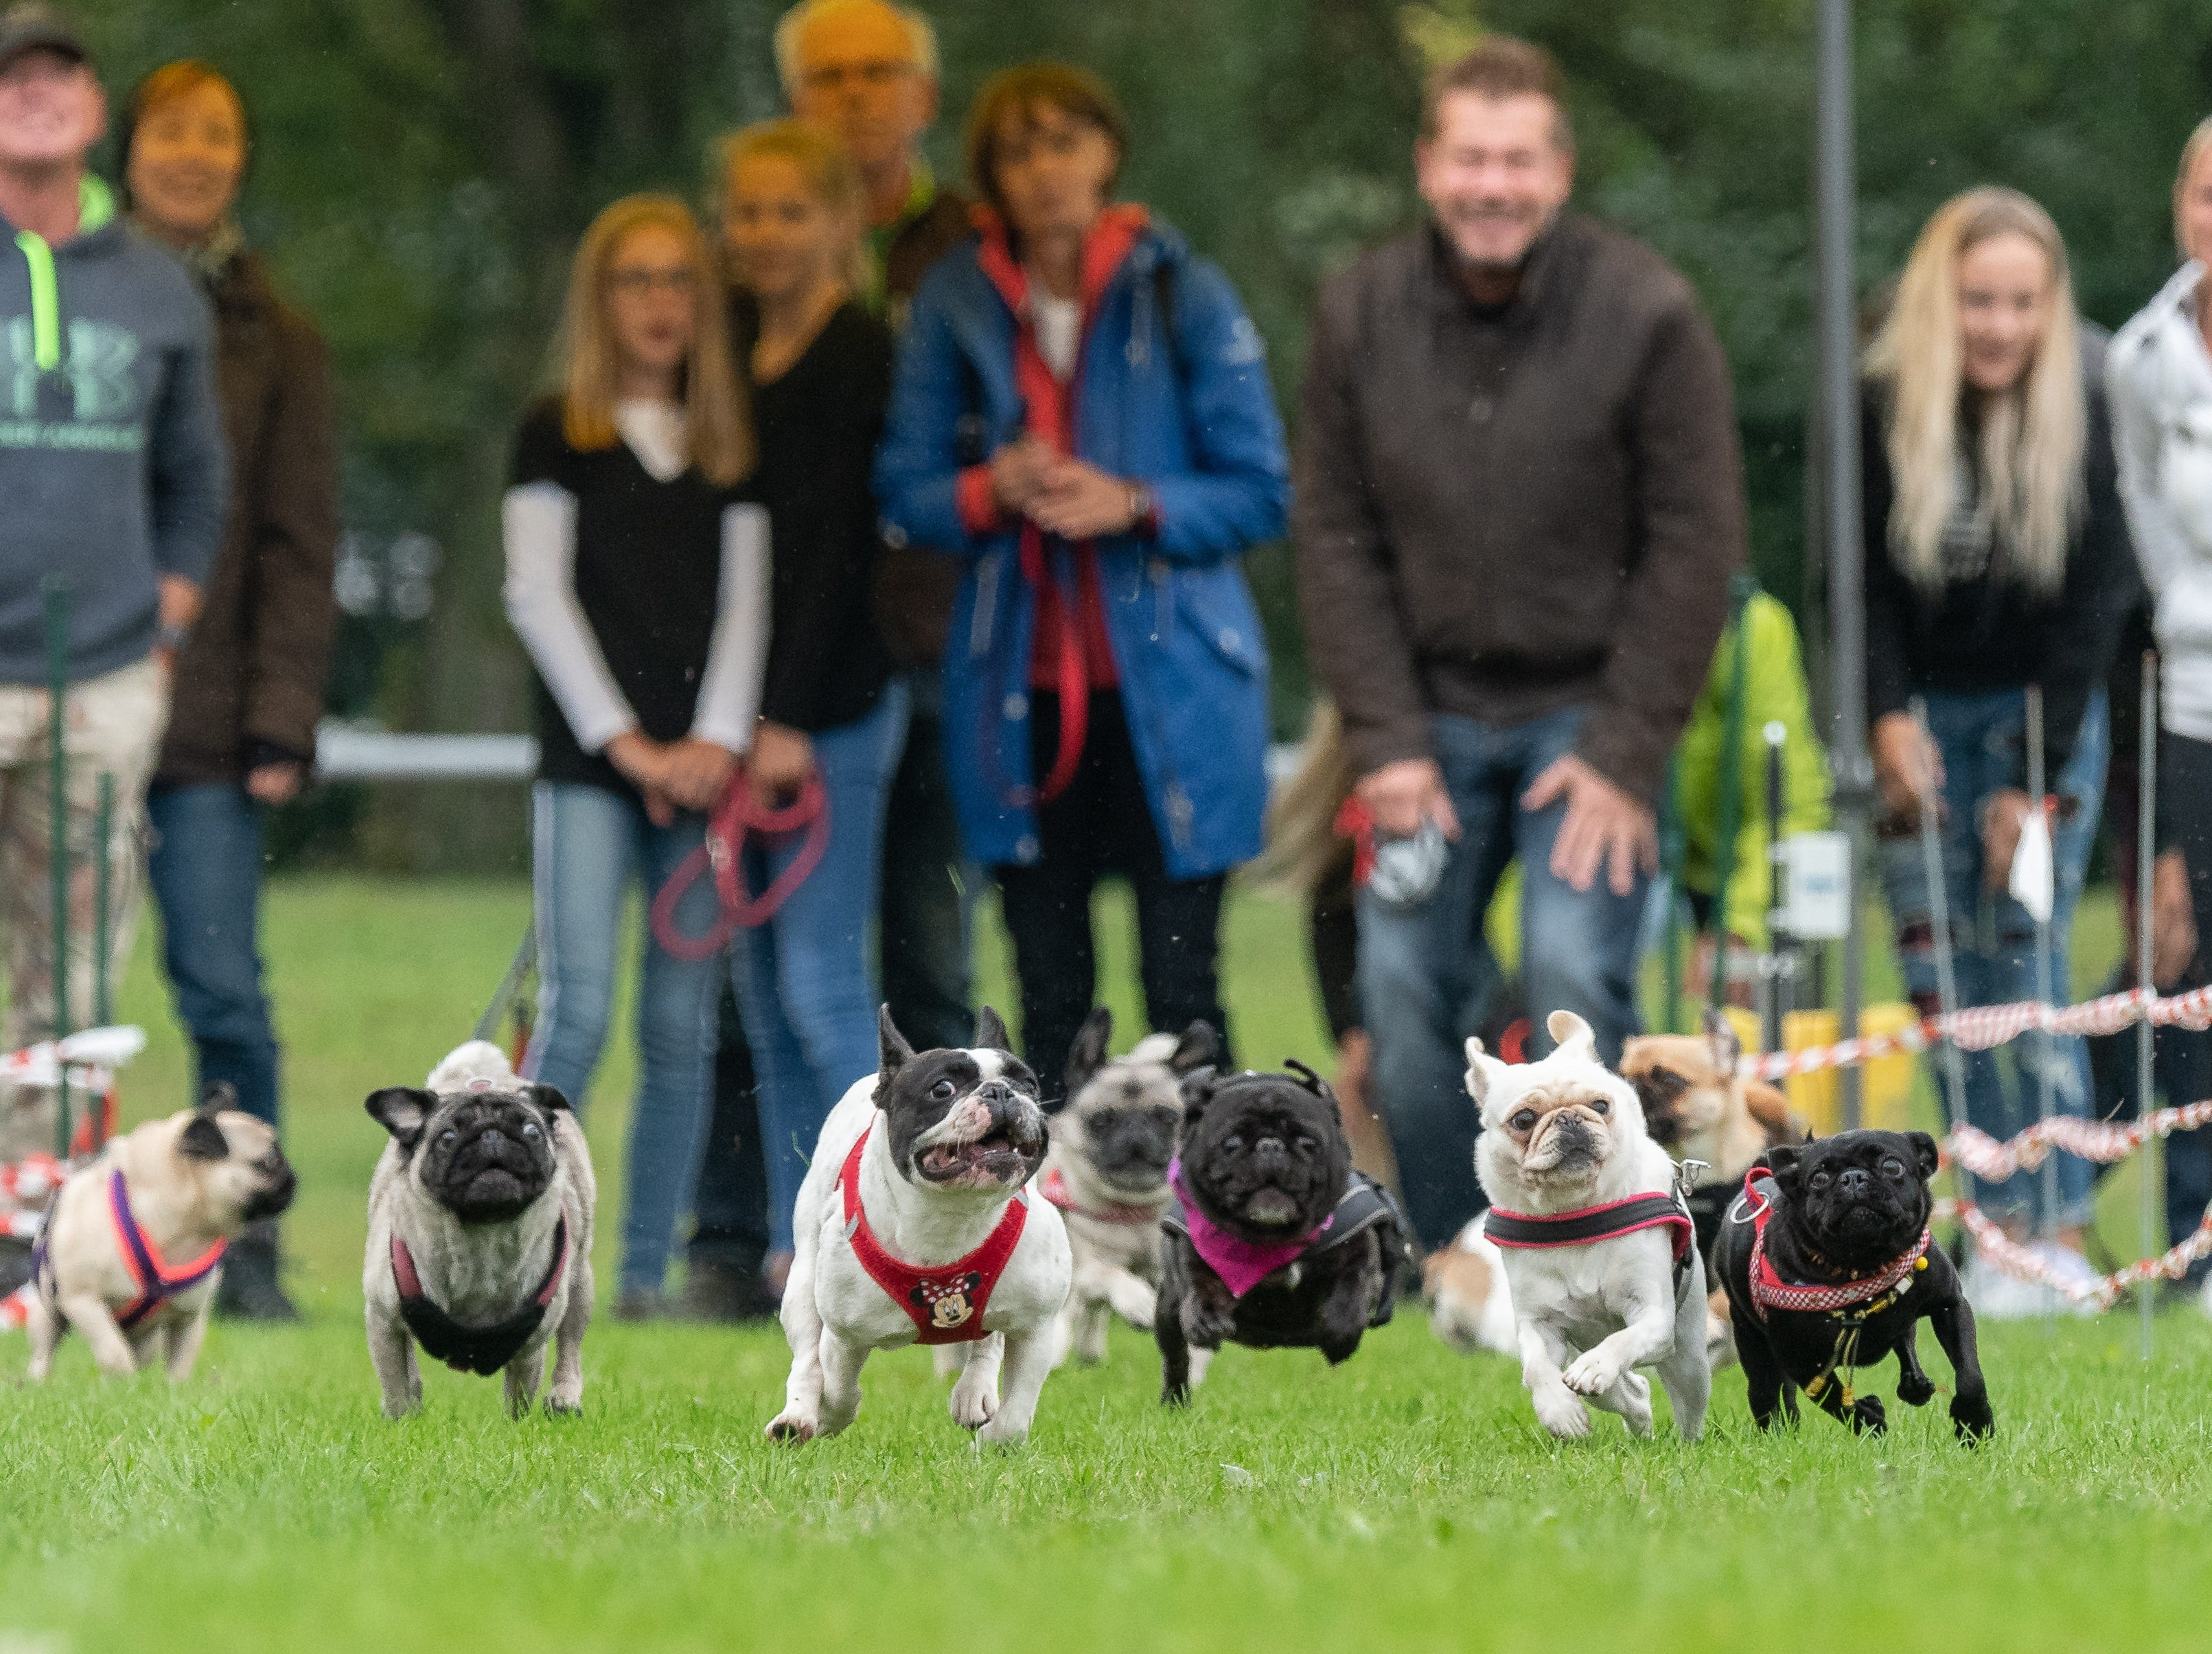 Pugs and French bulldogs run on a grass pitch during the 8th Southern German pug and bulldog race in Wernau,  Germany.